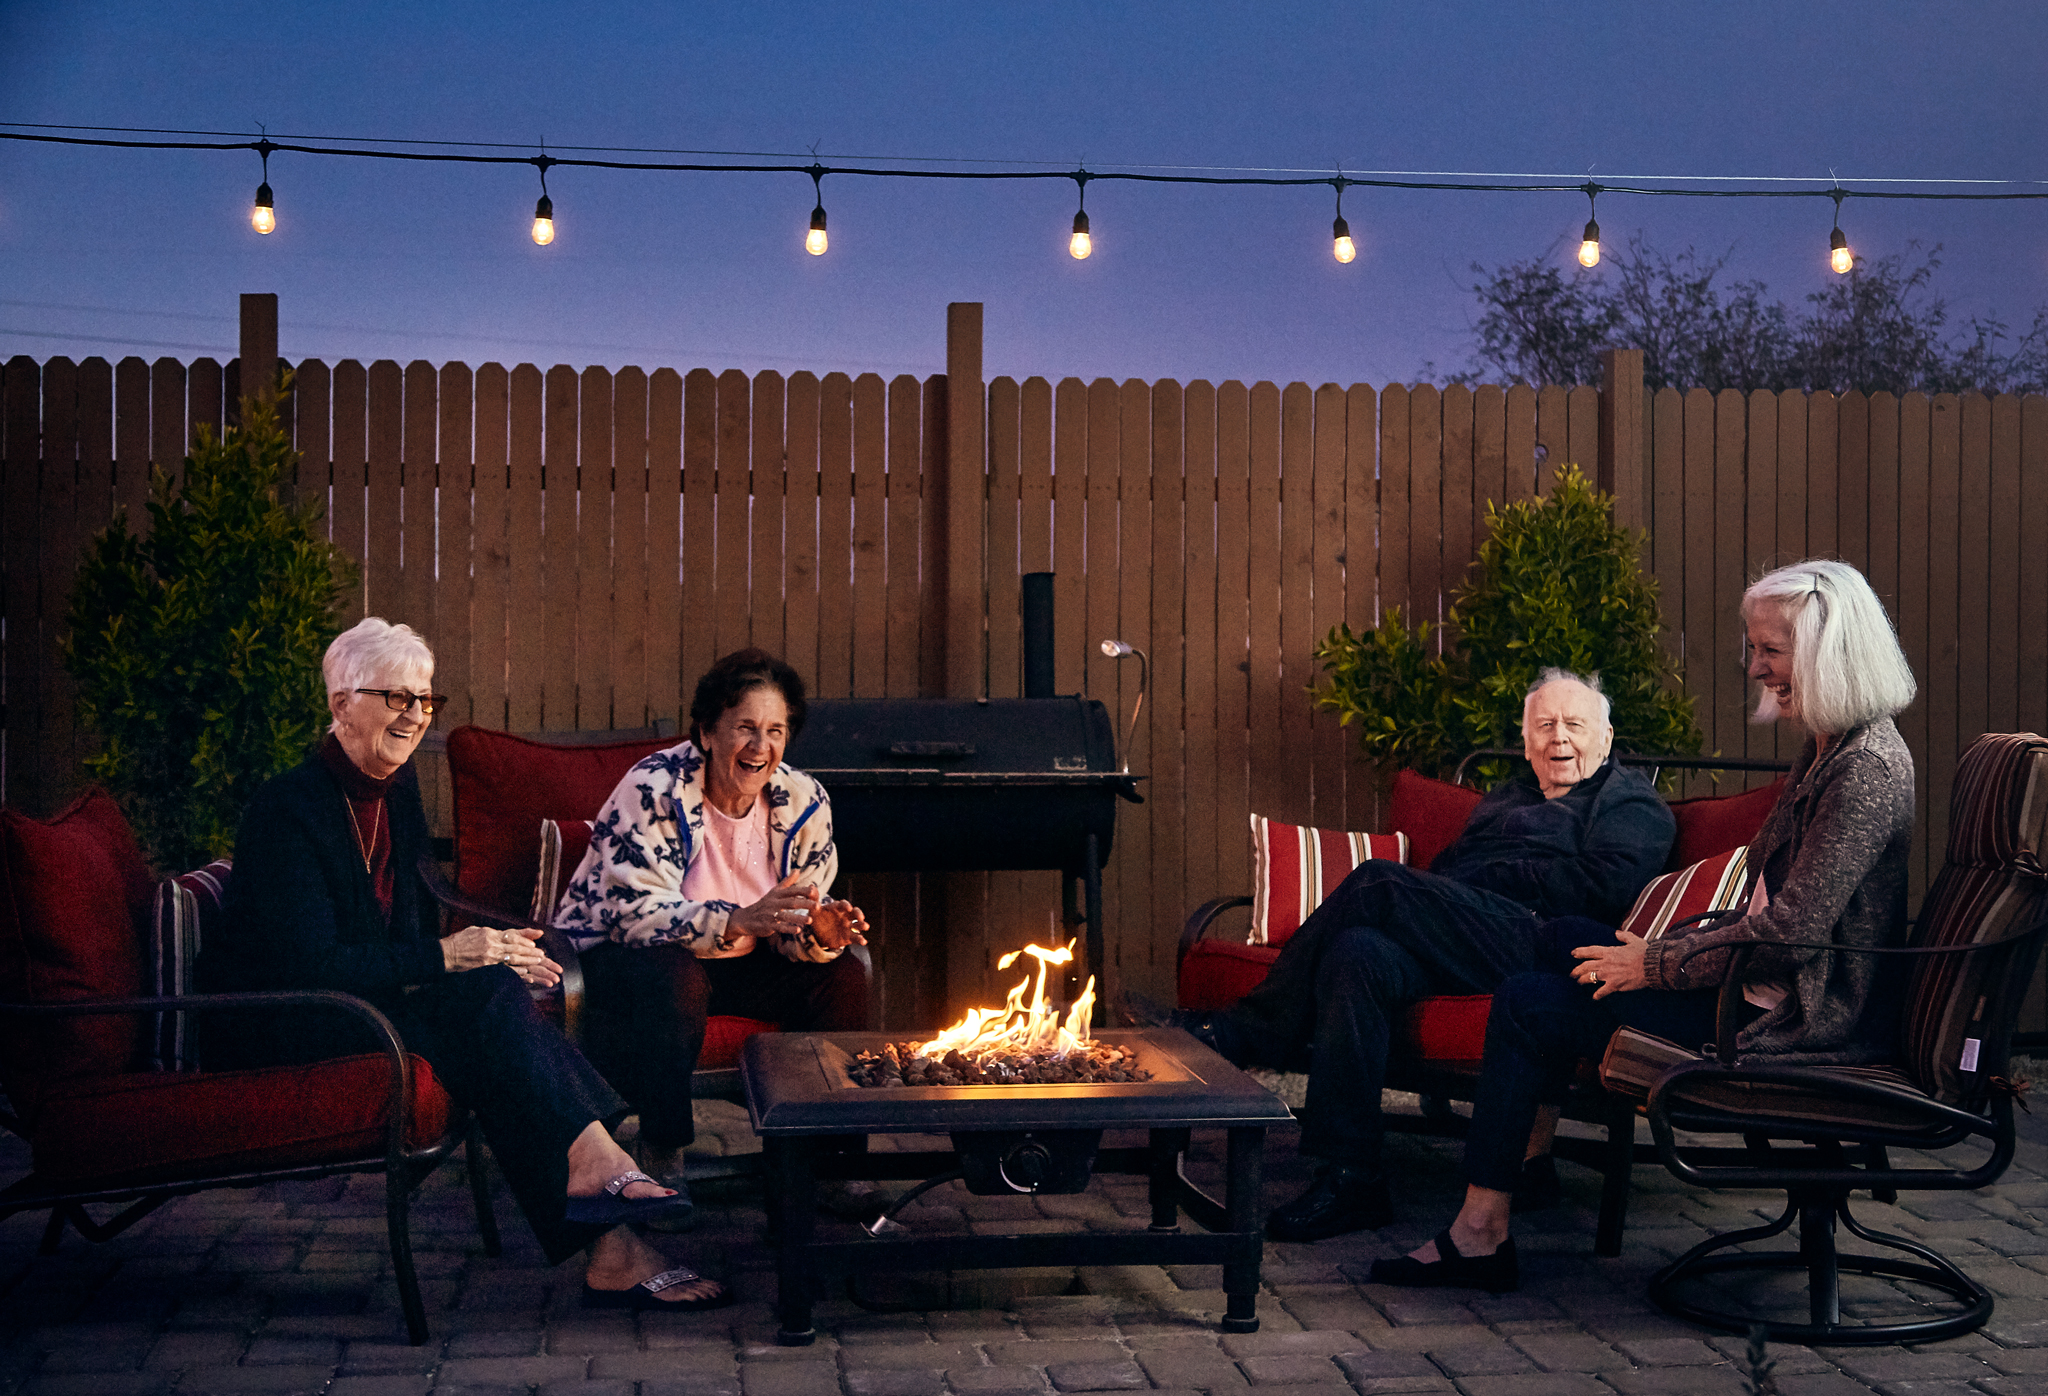 Commercial-Photographer-Brandon_Tigrett_Abellavida-lifestyle-firepit-2